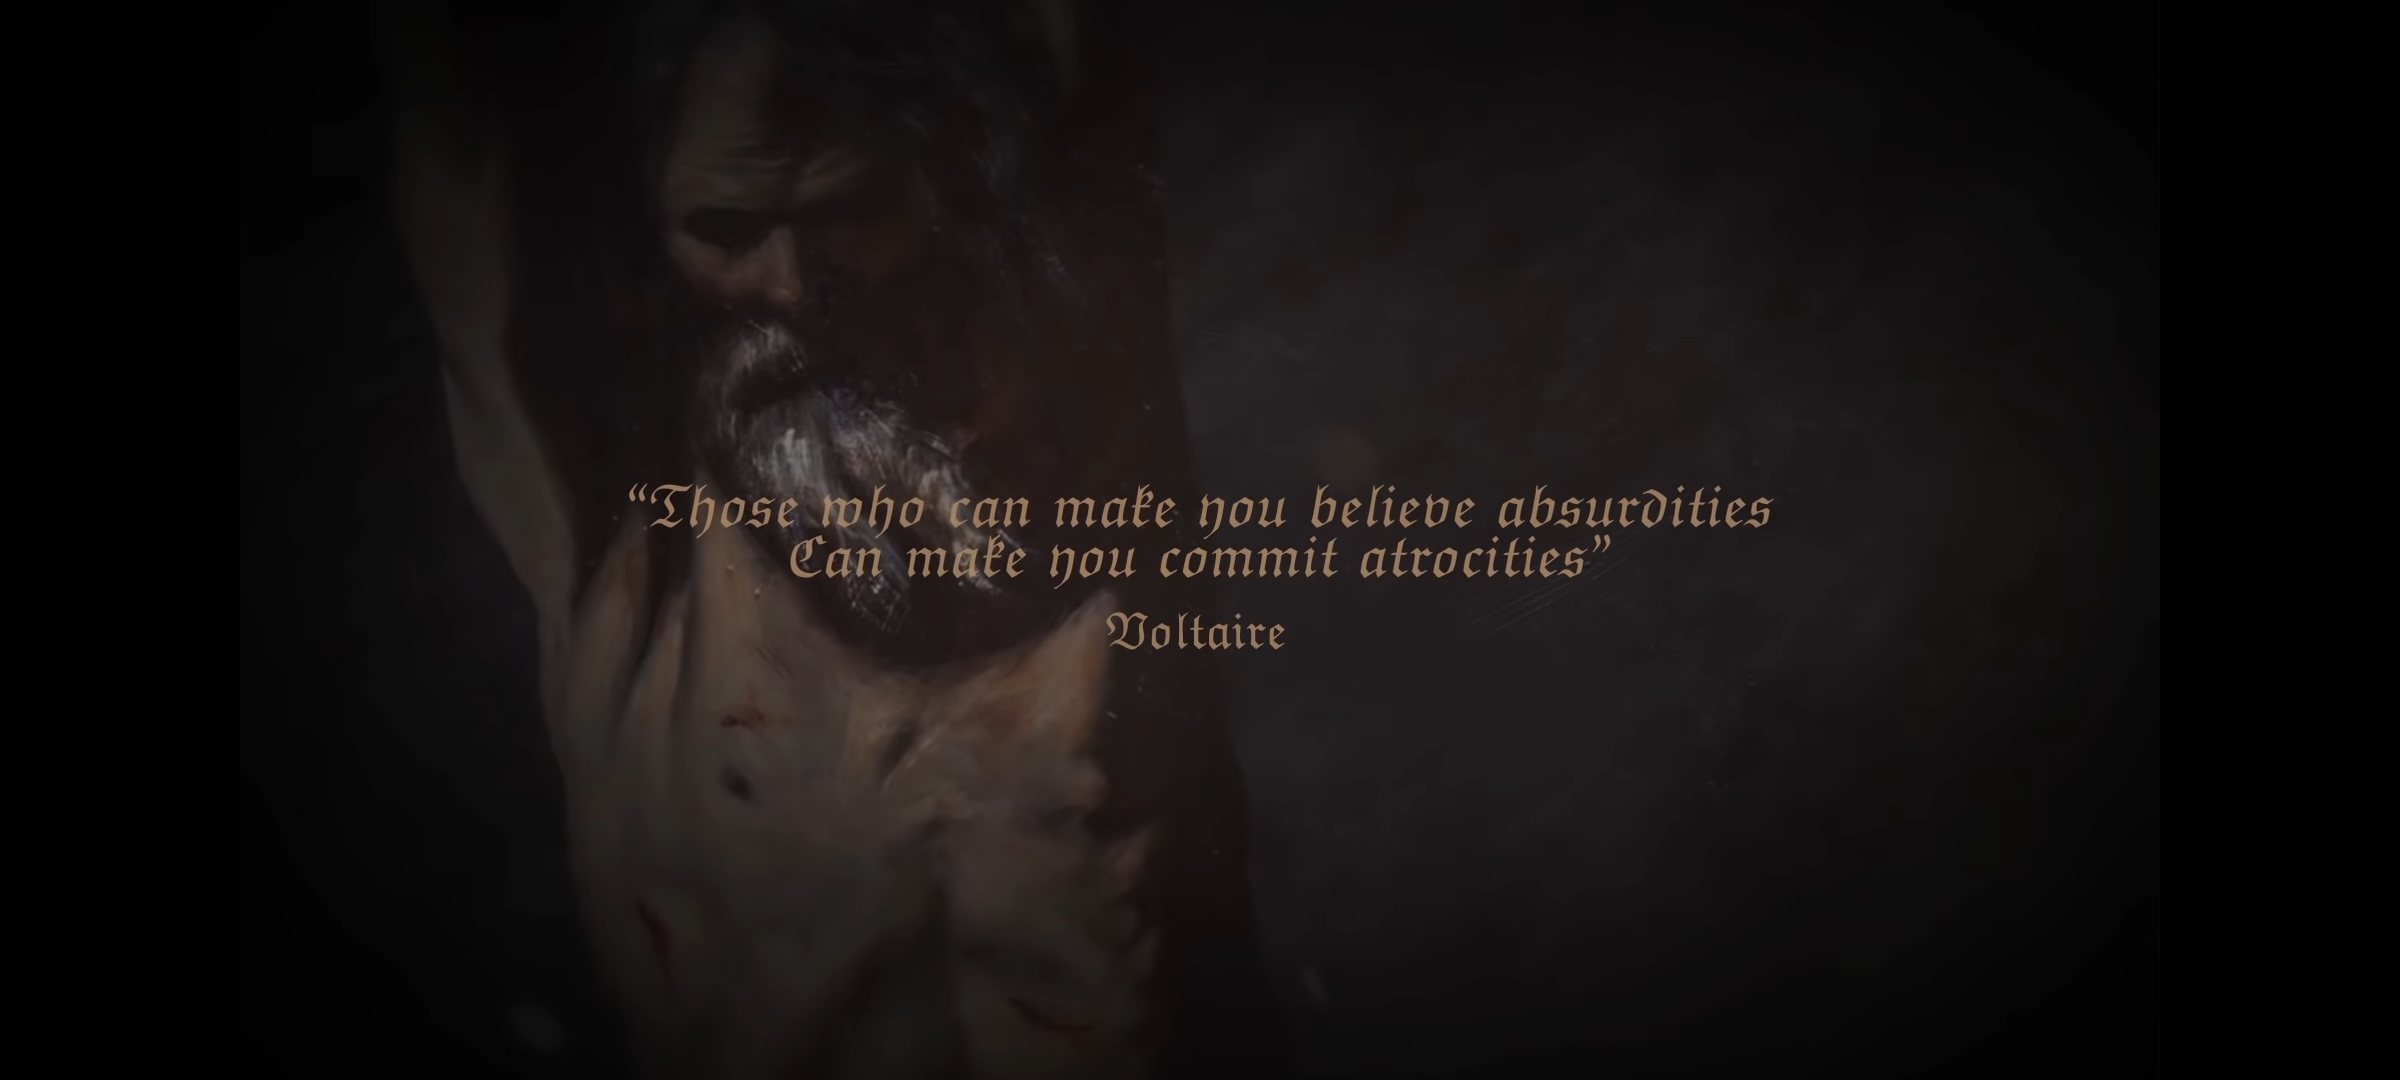 """Those who can make you believe absurdities, can make you commit atrocities."" – Voltaire [2400×1080]"